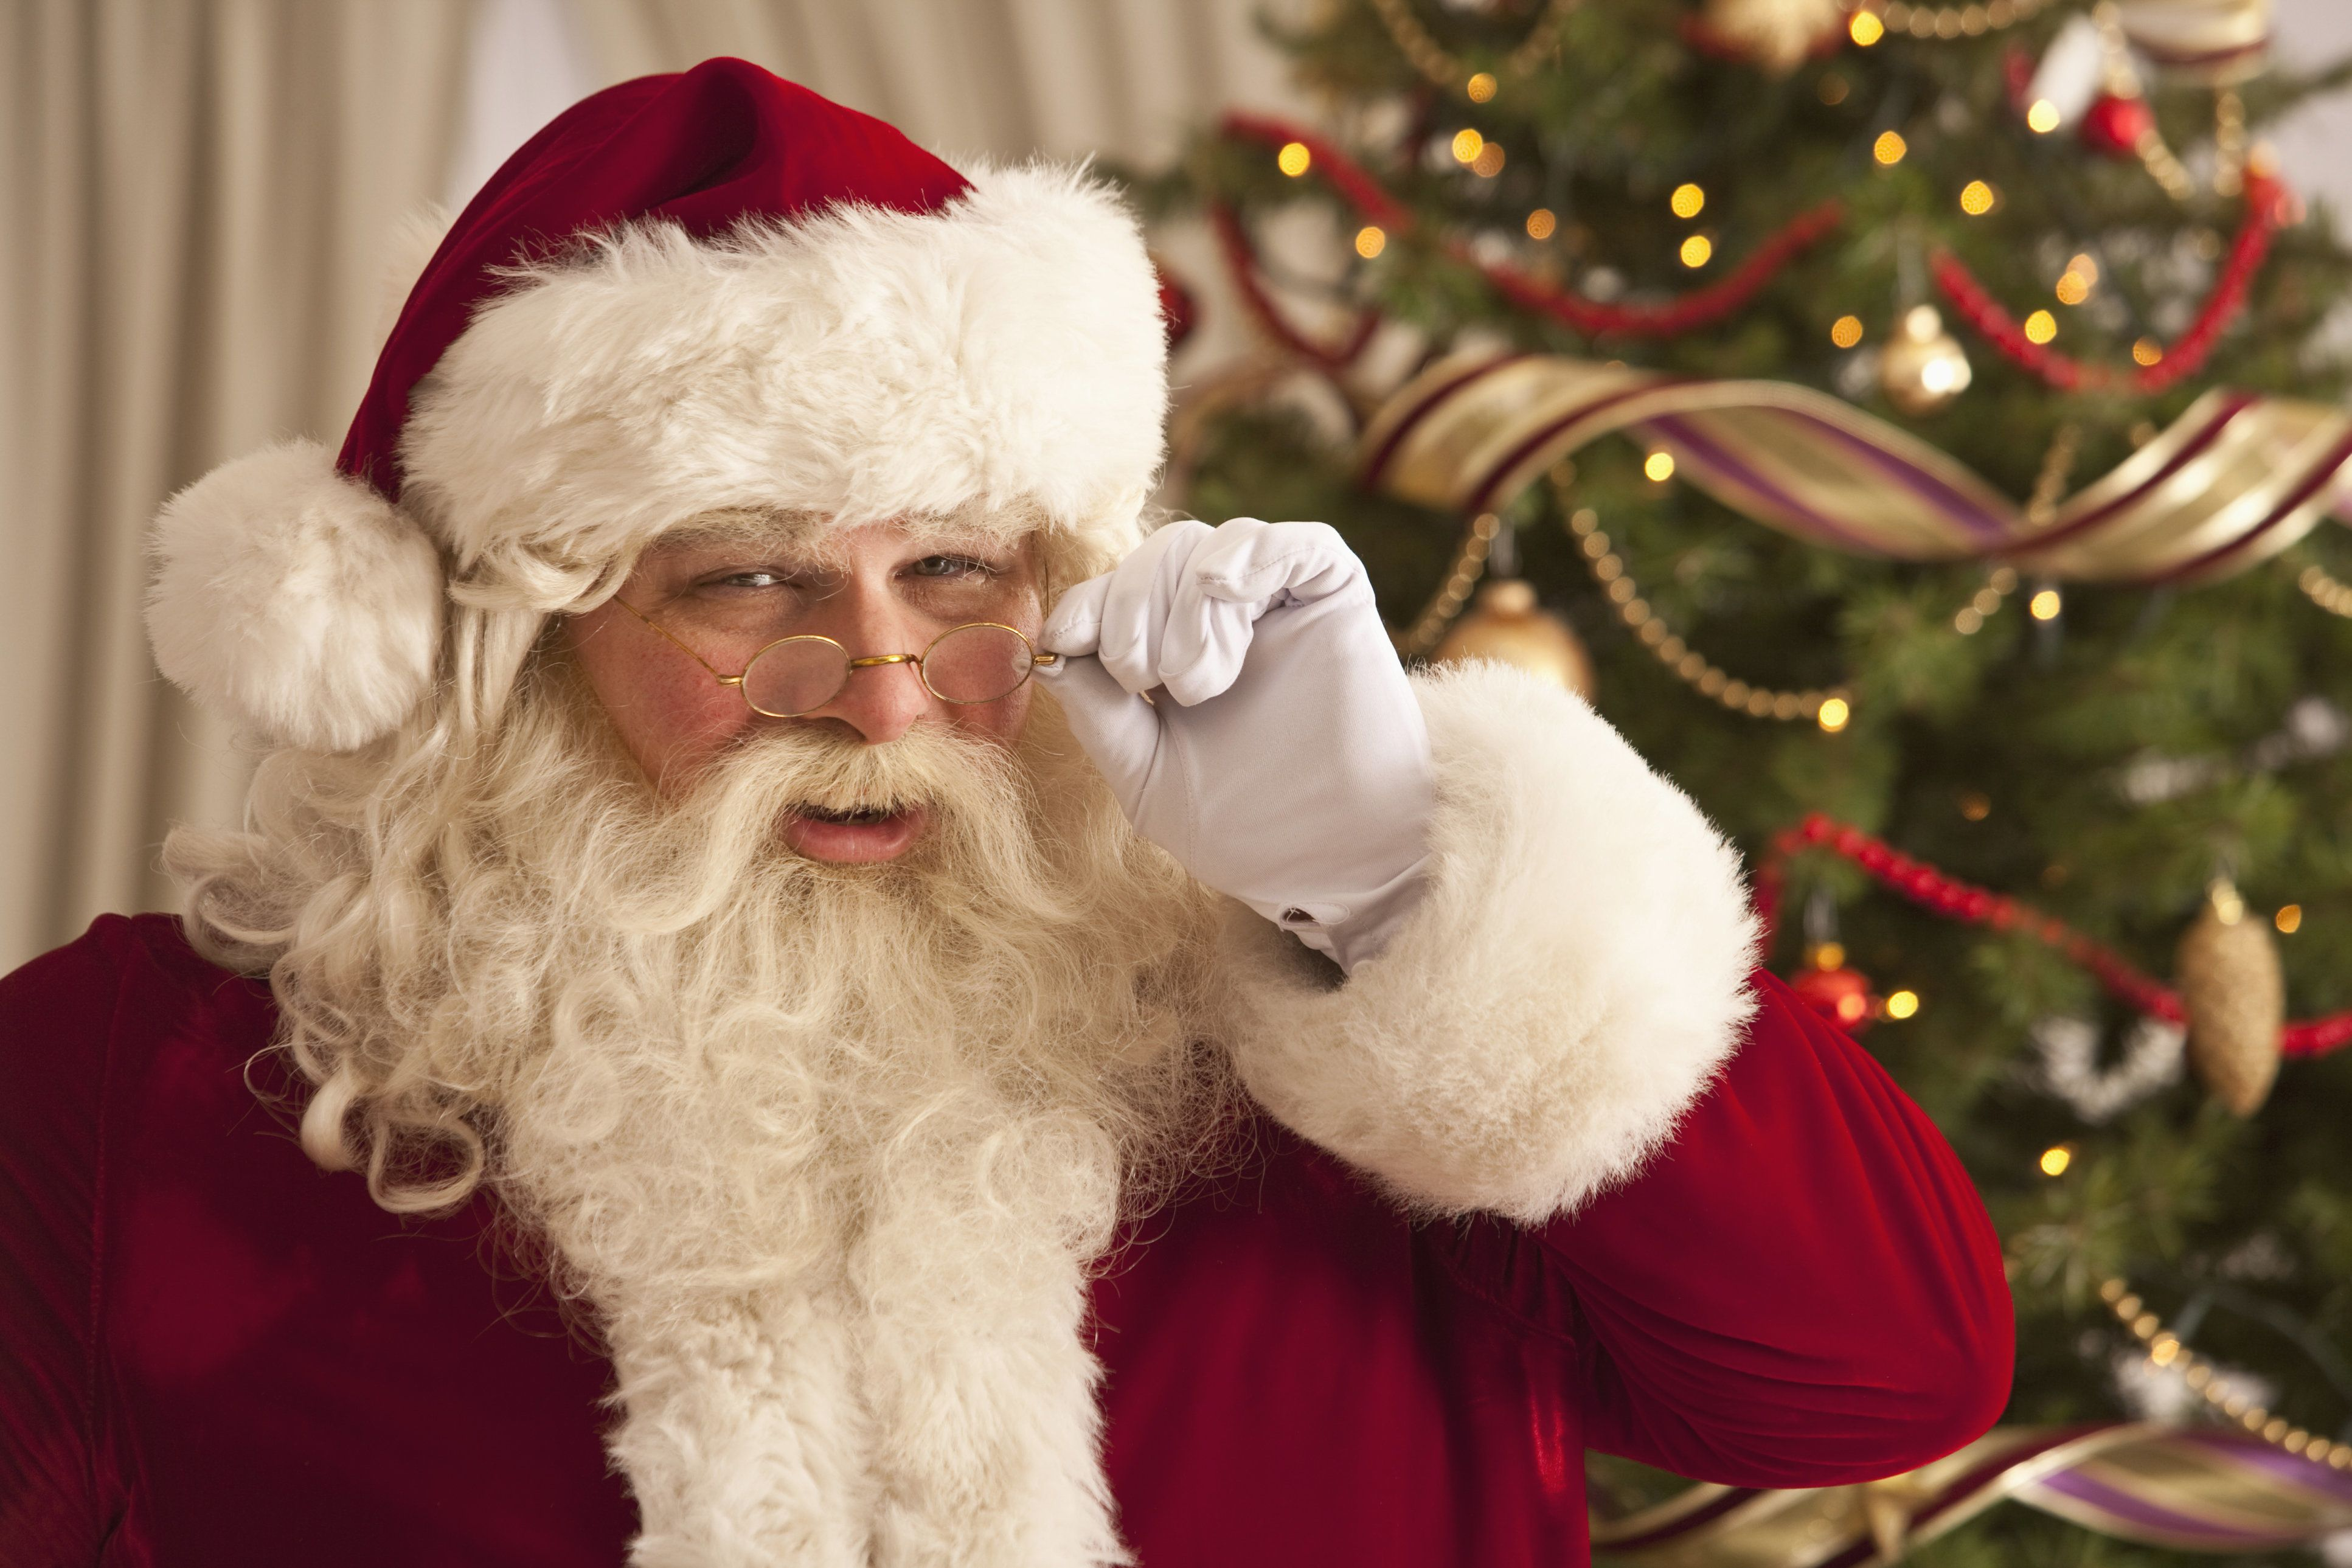 This viral post shares how to break the news about Santa without making kids feel lied